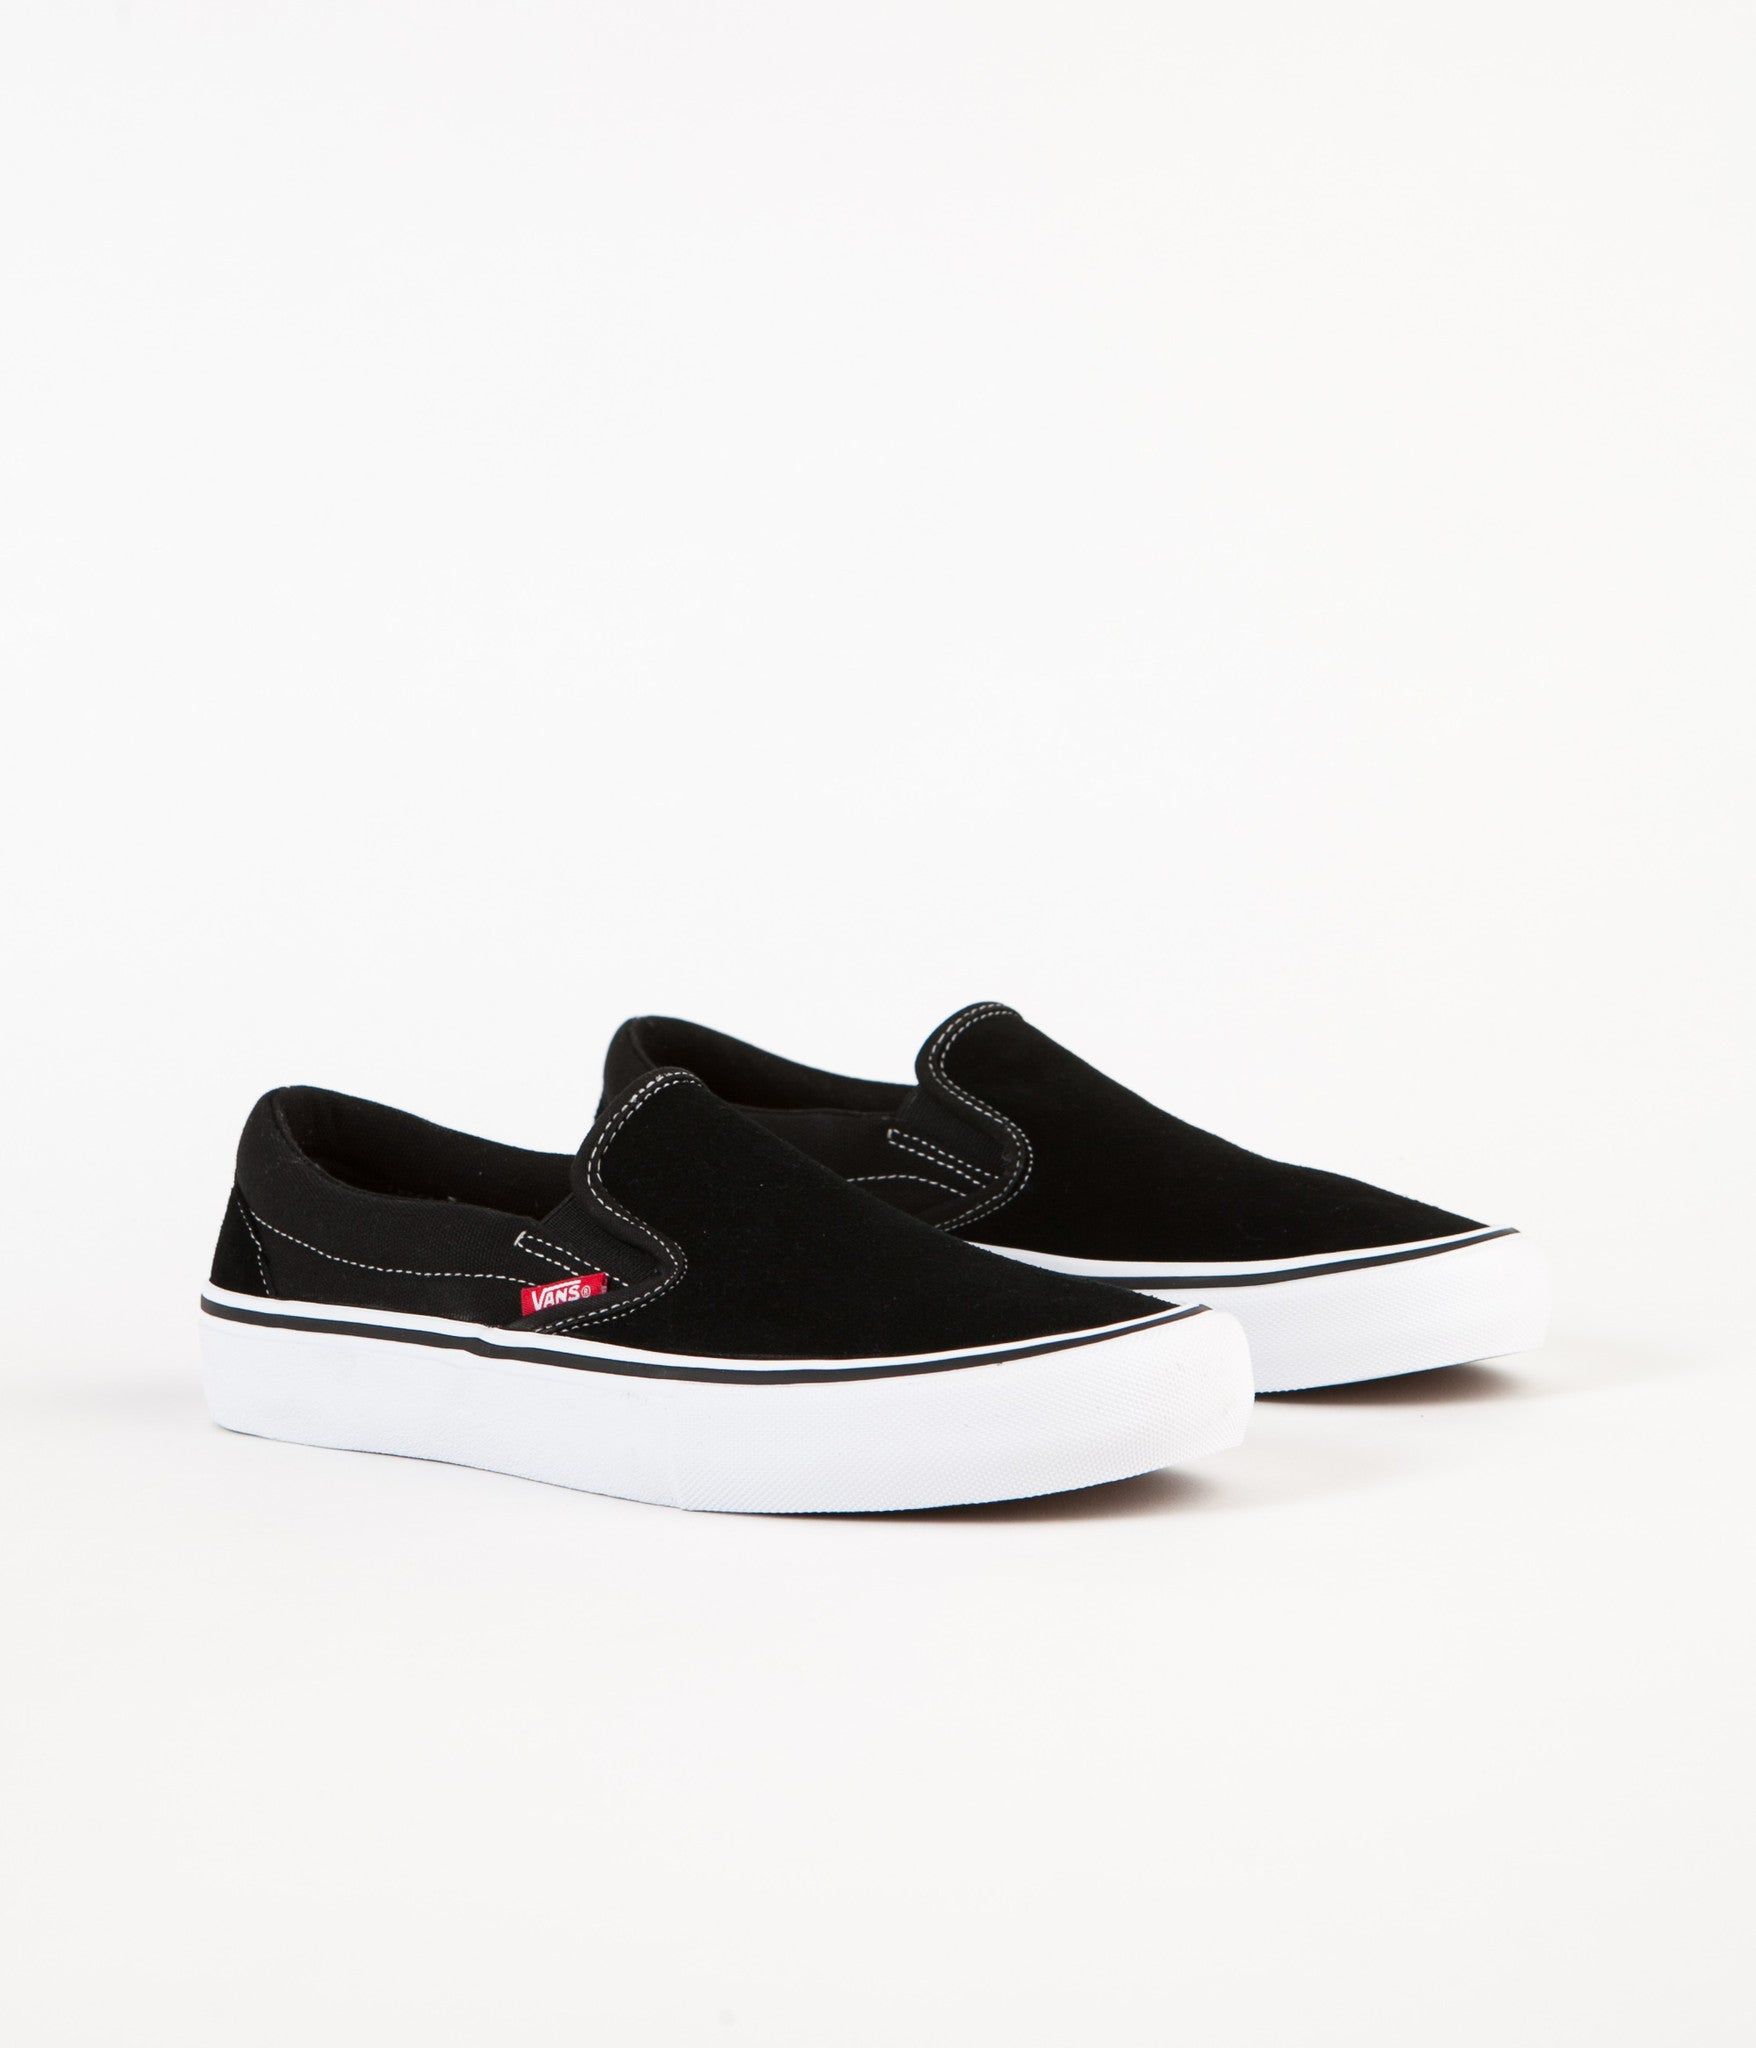 0e20c06591 ... Vans Slip On Pro Shoes - Black   White   Gum ...